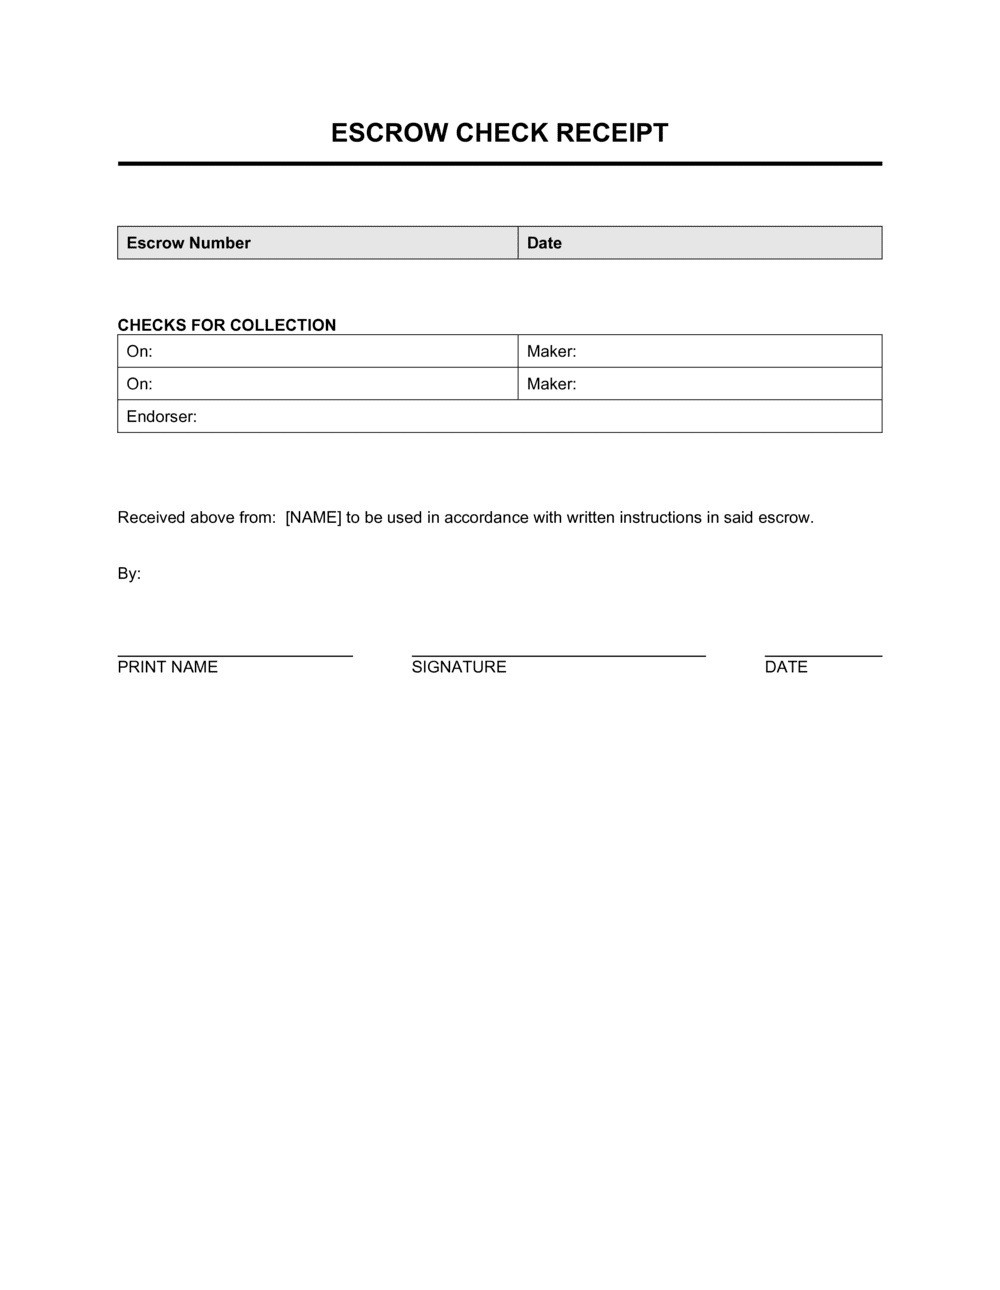 Escrow Check Receipt Template By Business In A Box